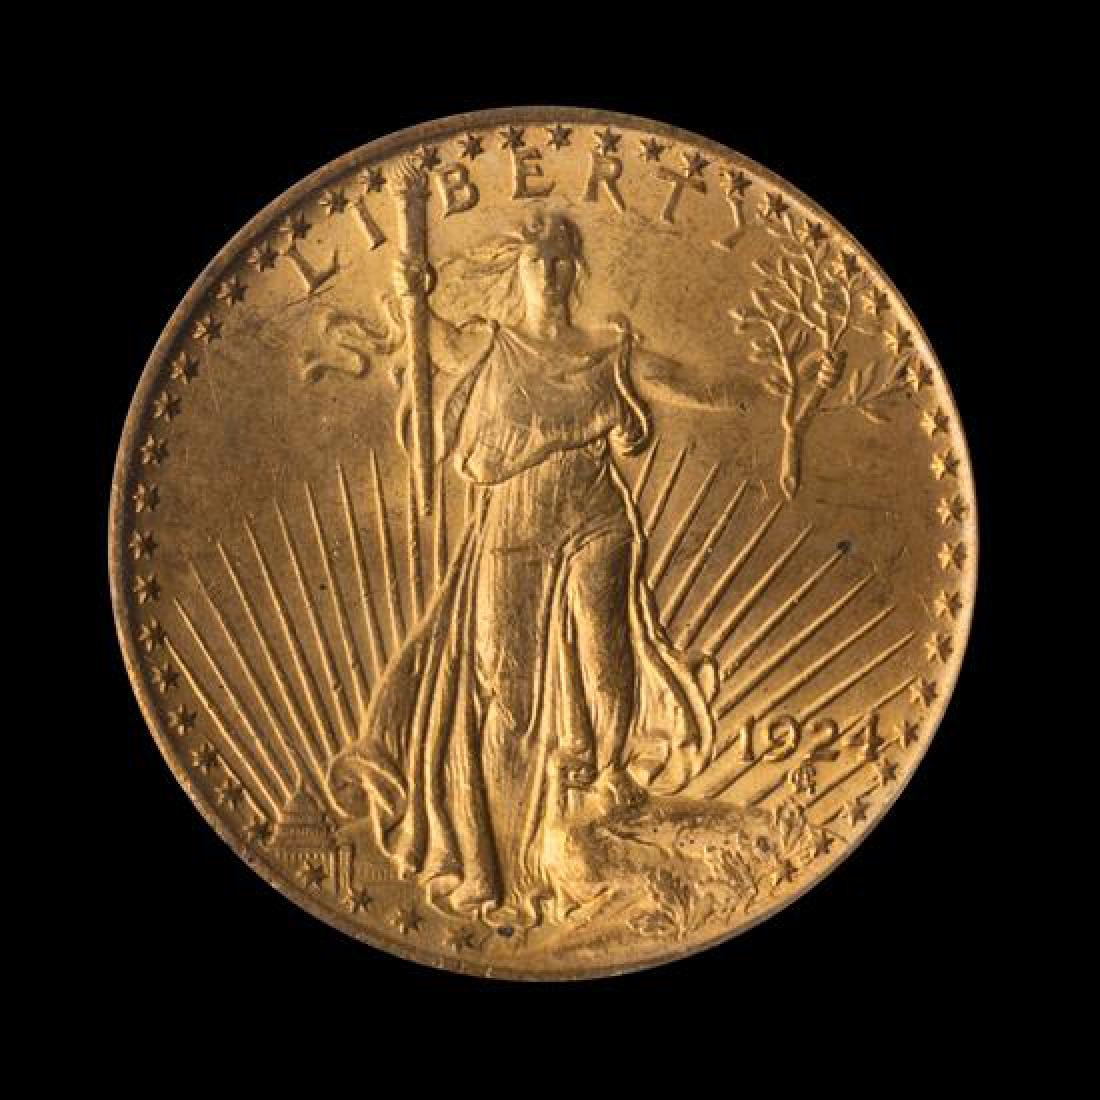 A United States 1924 Saint-Gaudens $20 Gold Coin